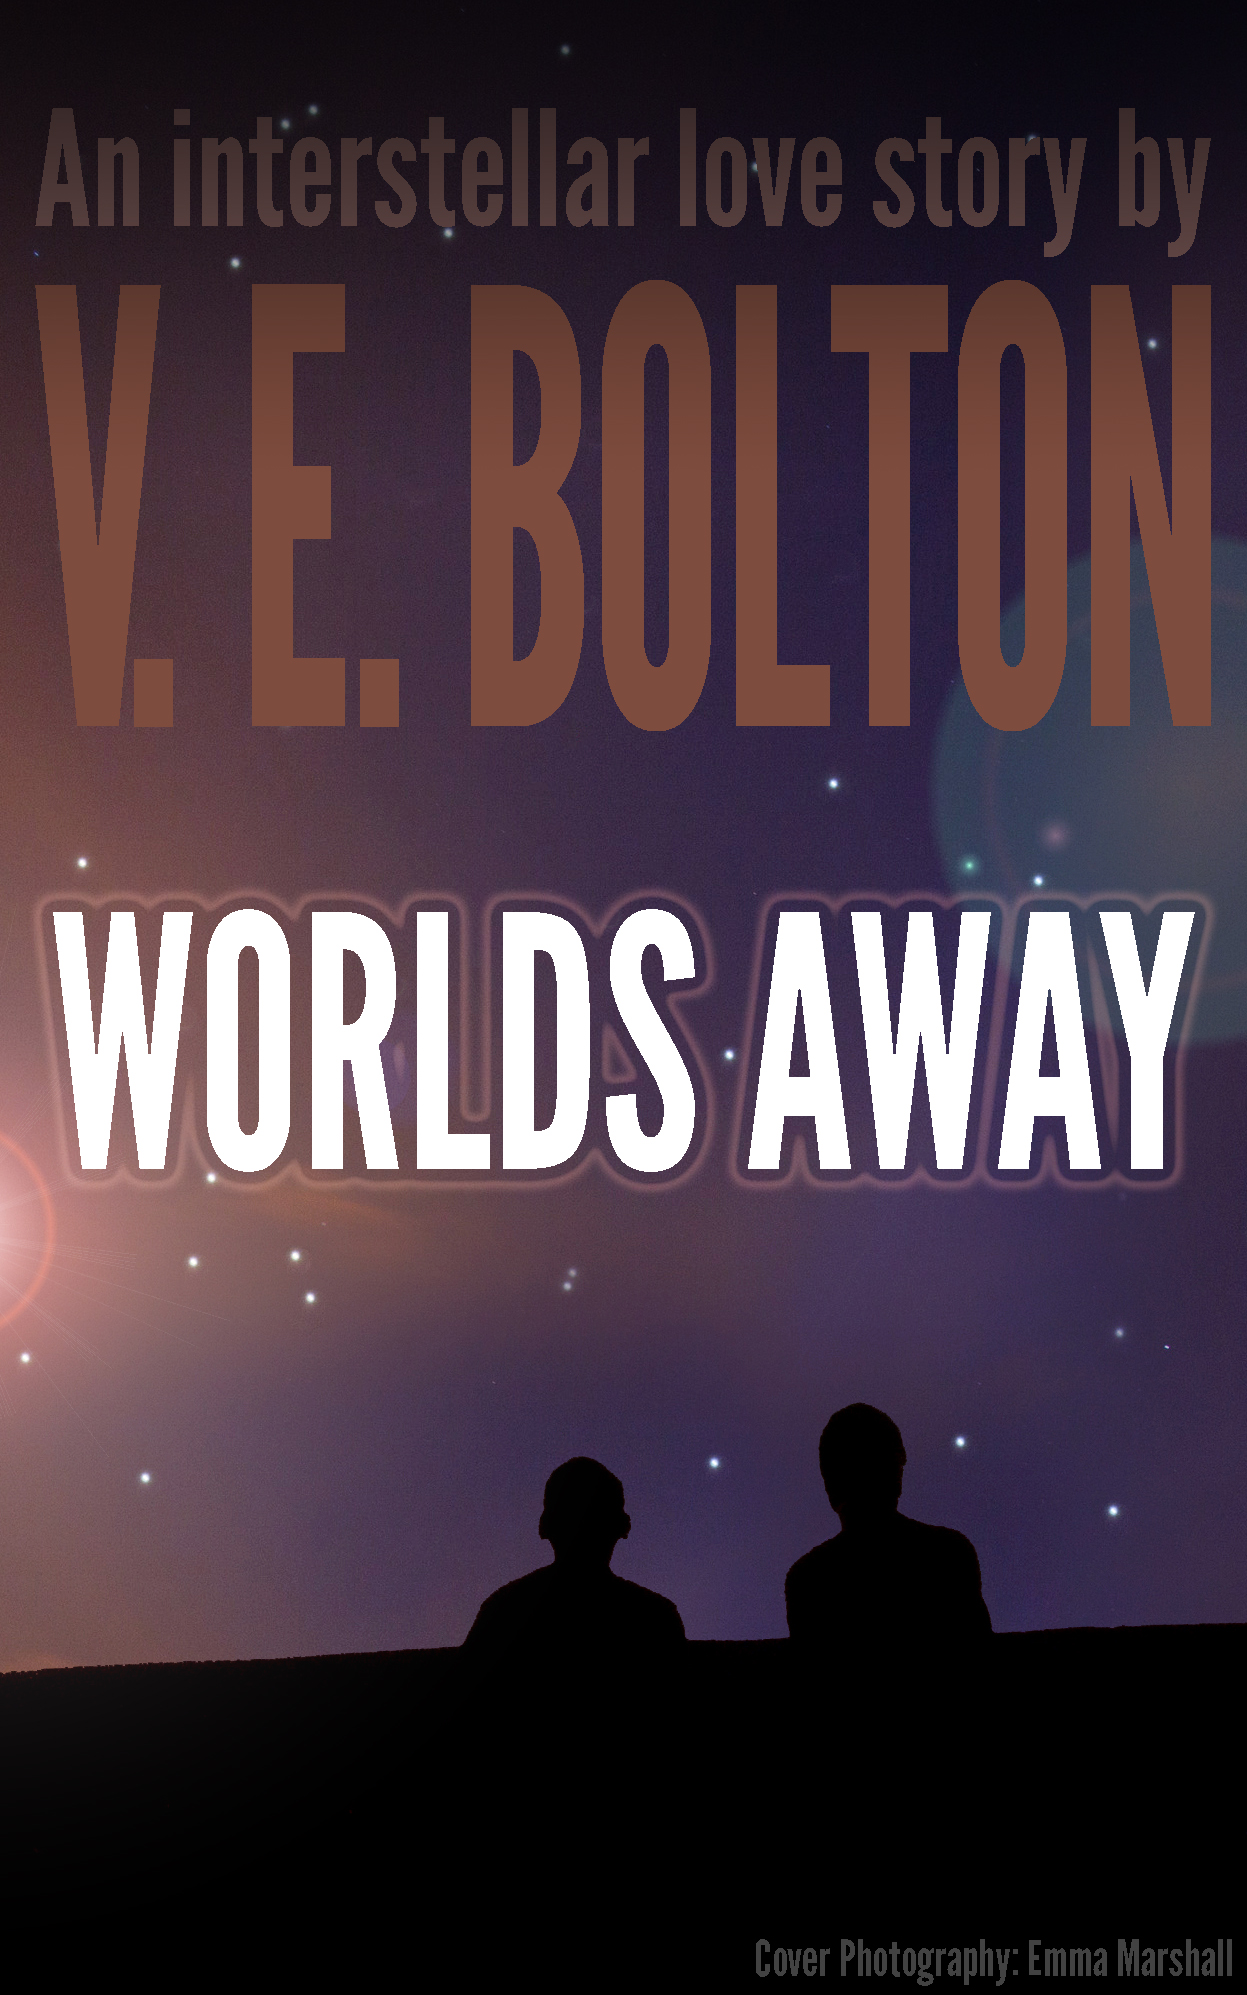 Worlds Away: A novel by V E Bolton